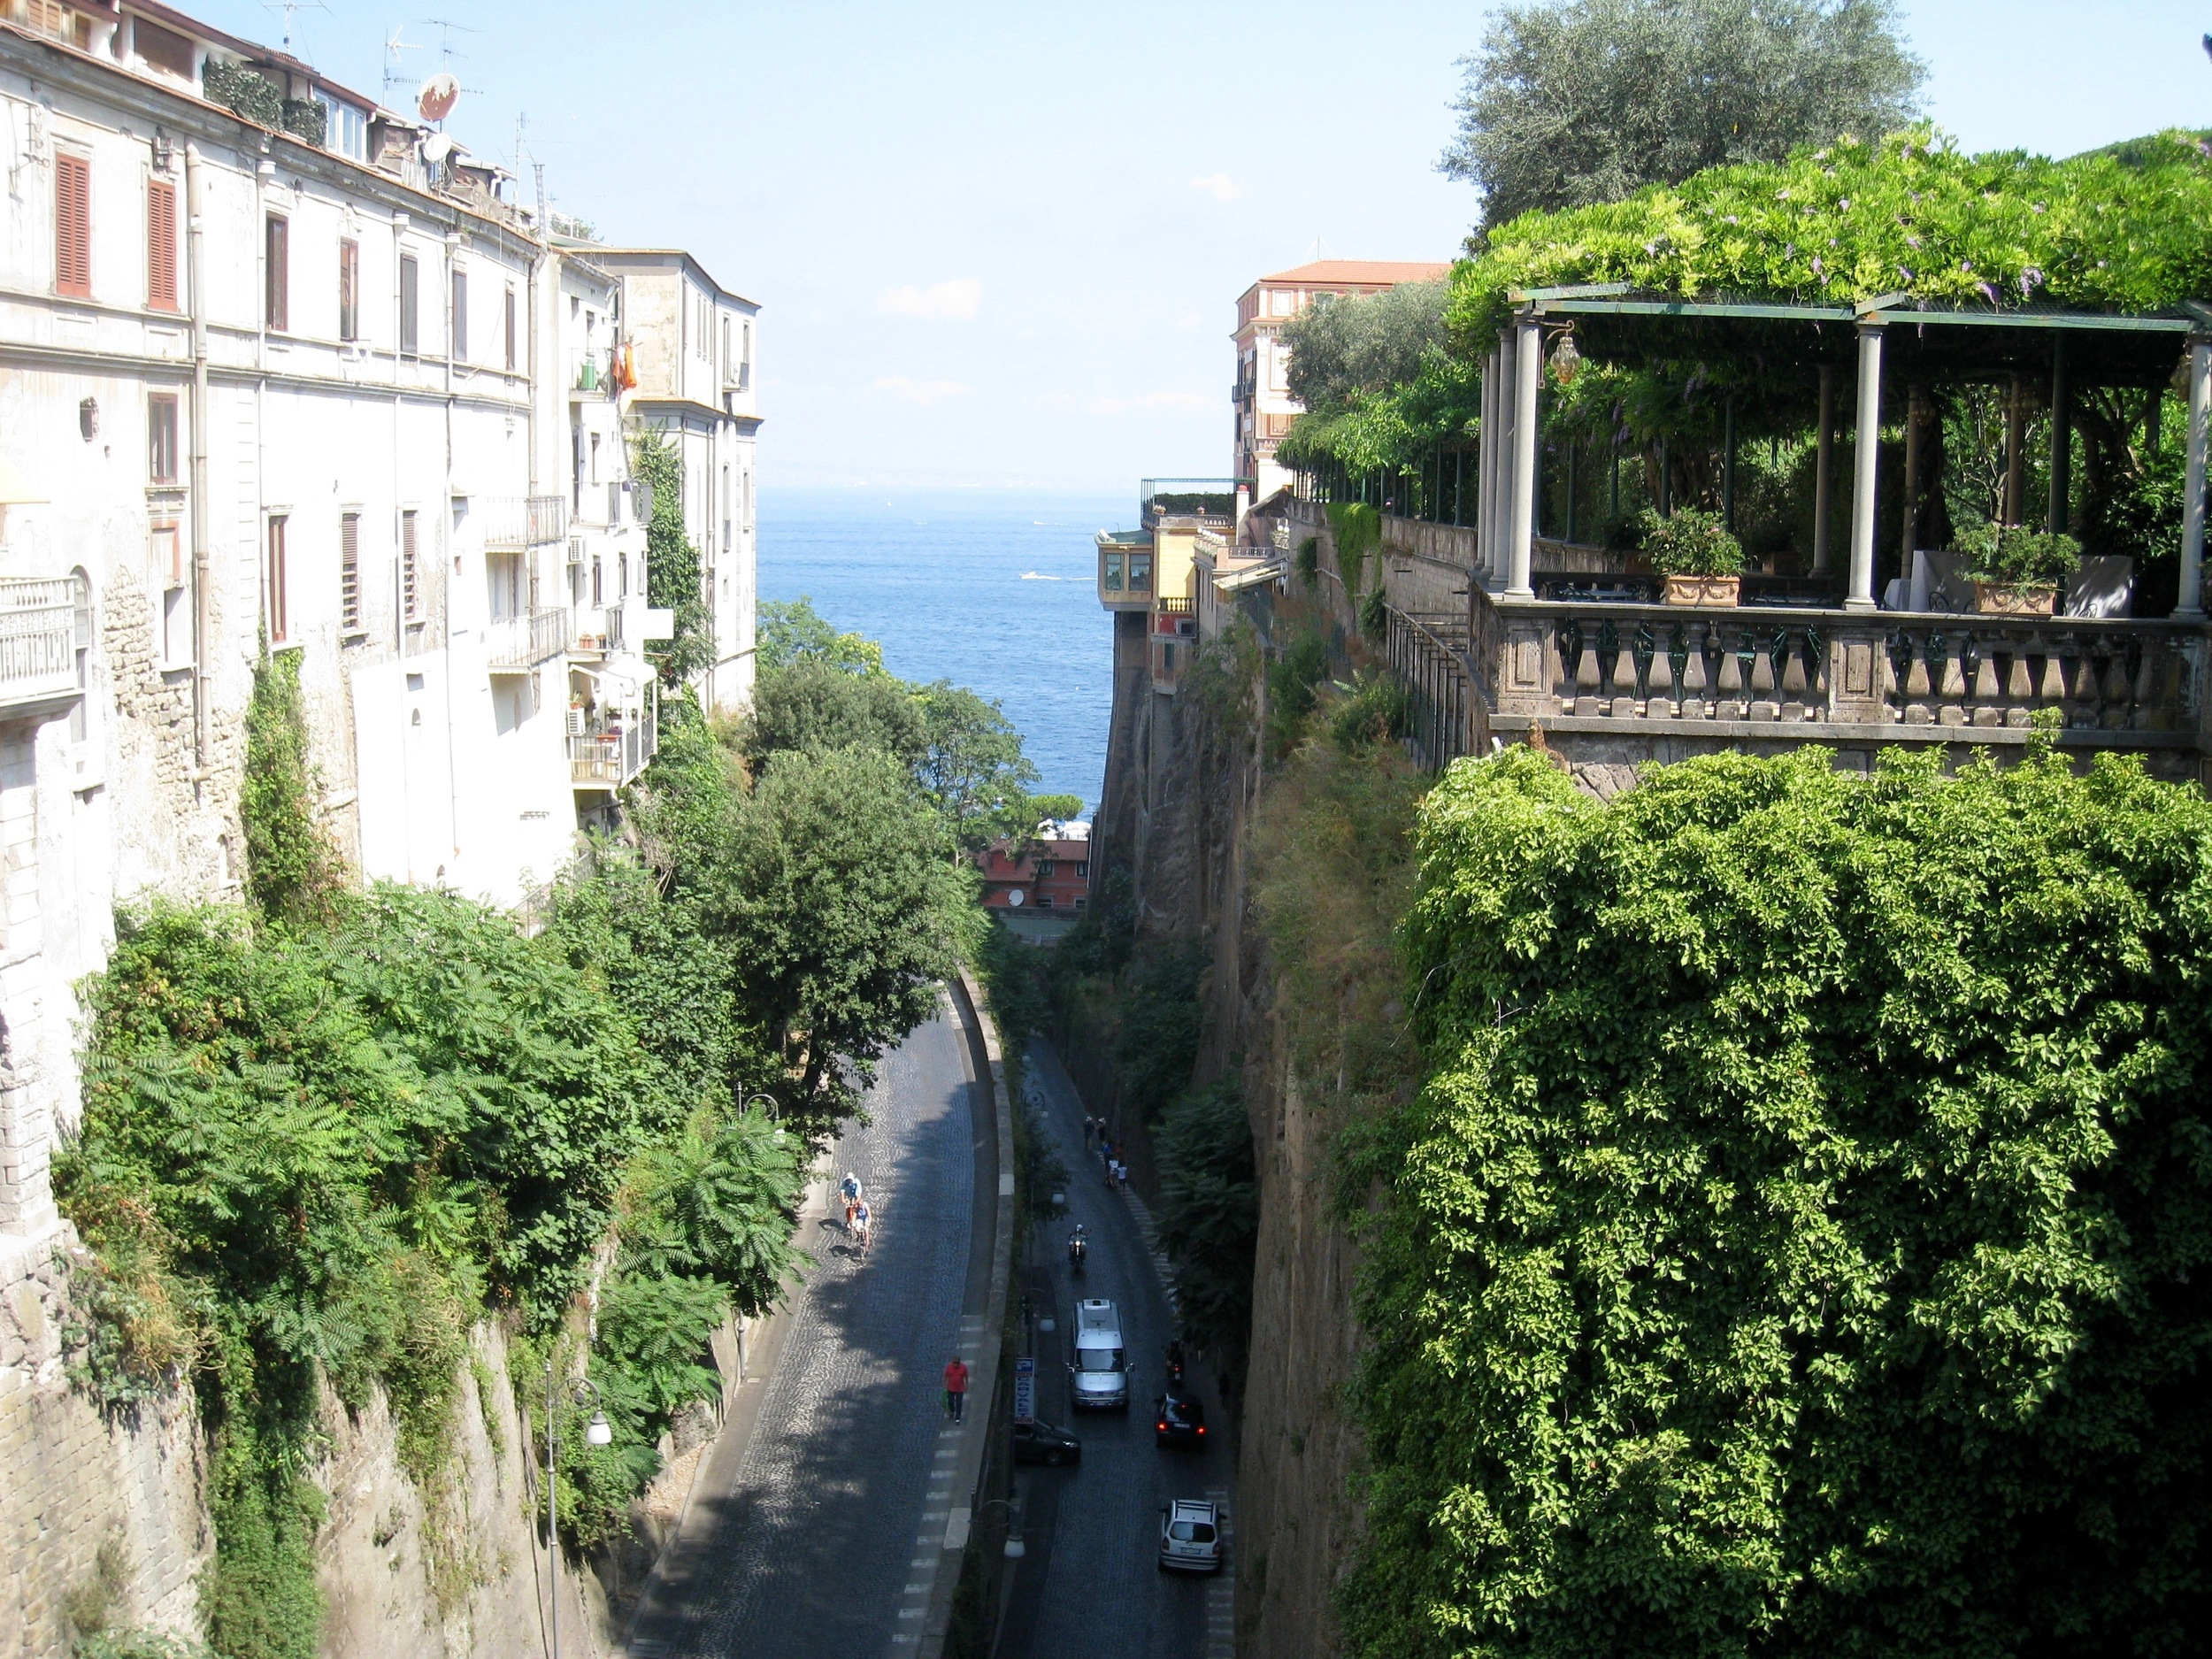 37 Sorrento Sea View Italy 2015.jpg